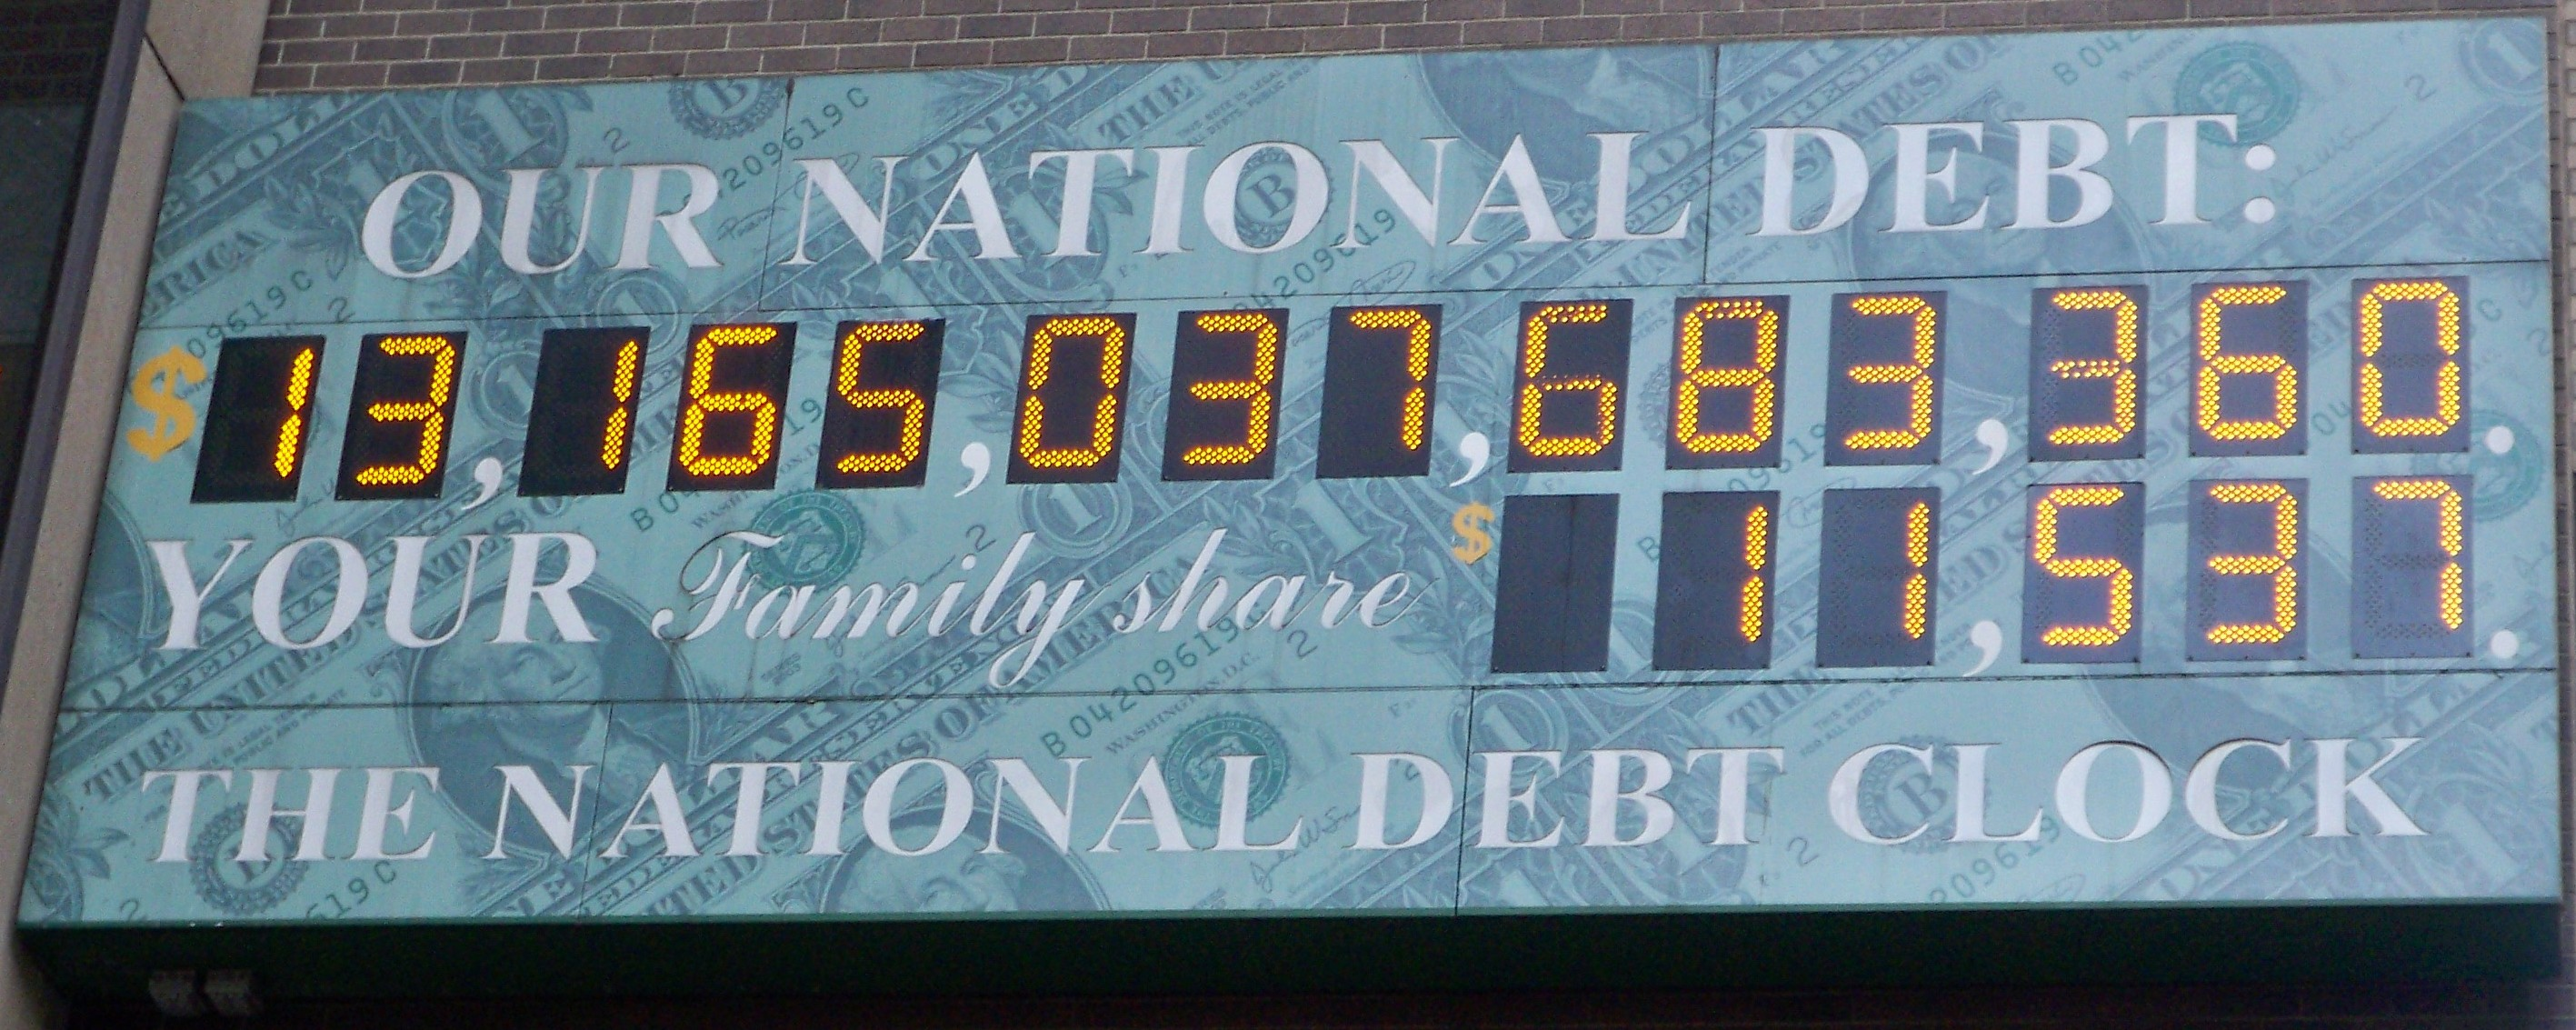 National_Debt_Clock_by_Matthew_Bisanz.JPG